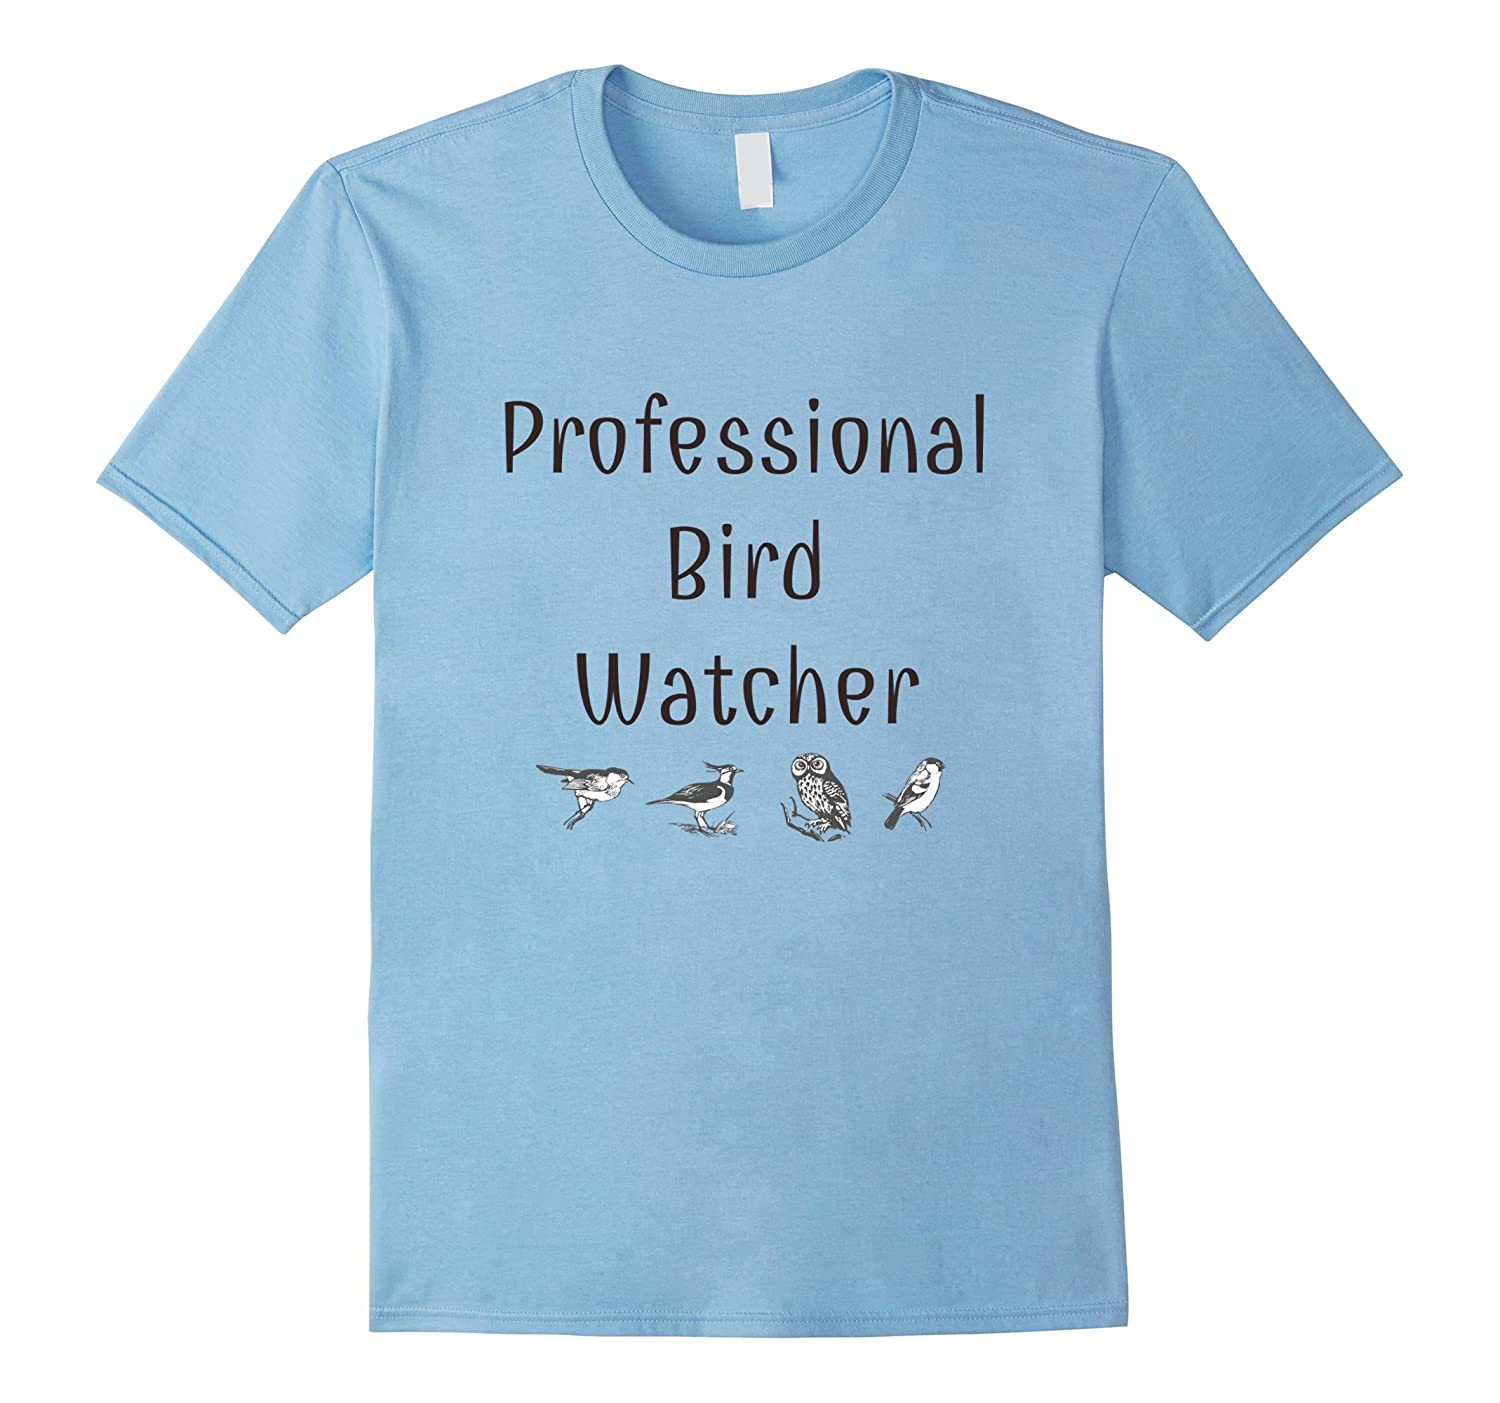 Bird Watcher t-Shirt  Womens, Mens, Bird Watching Tee